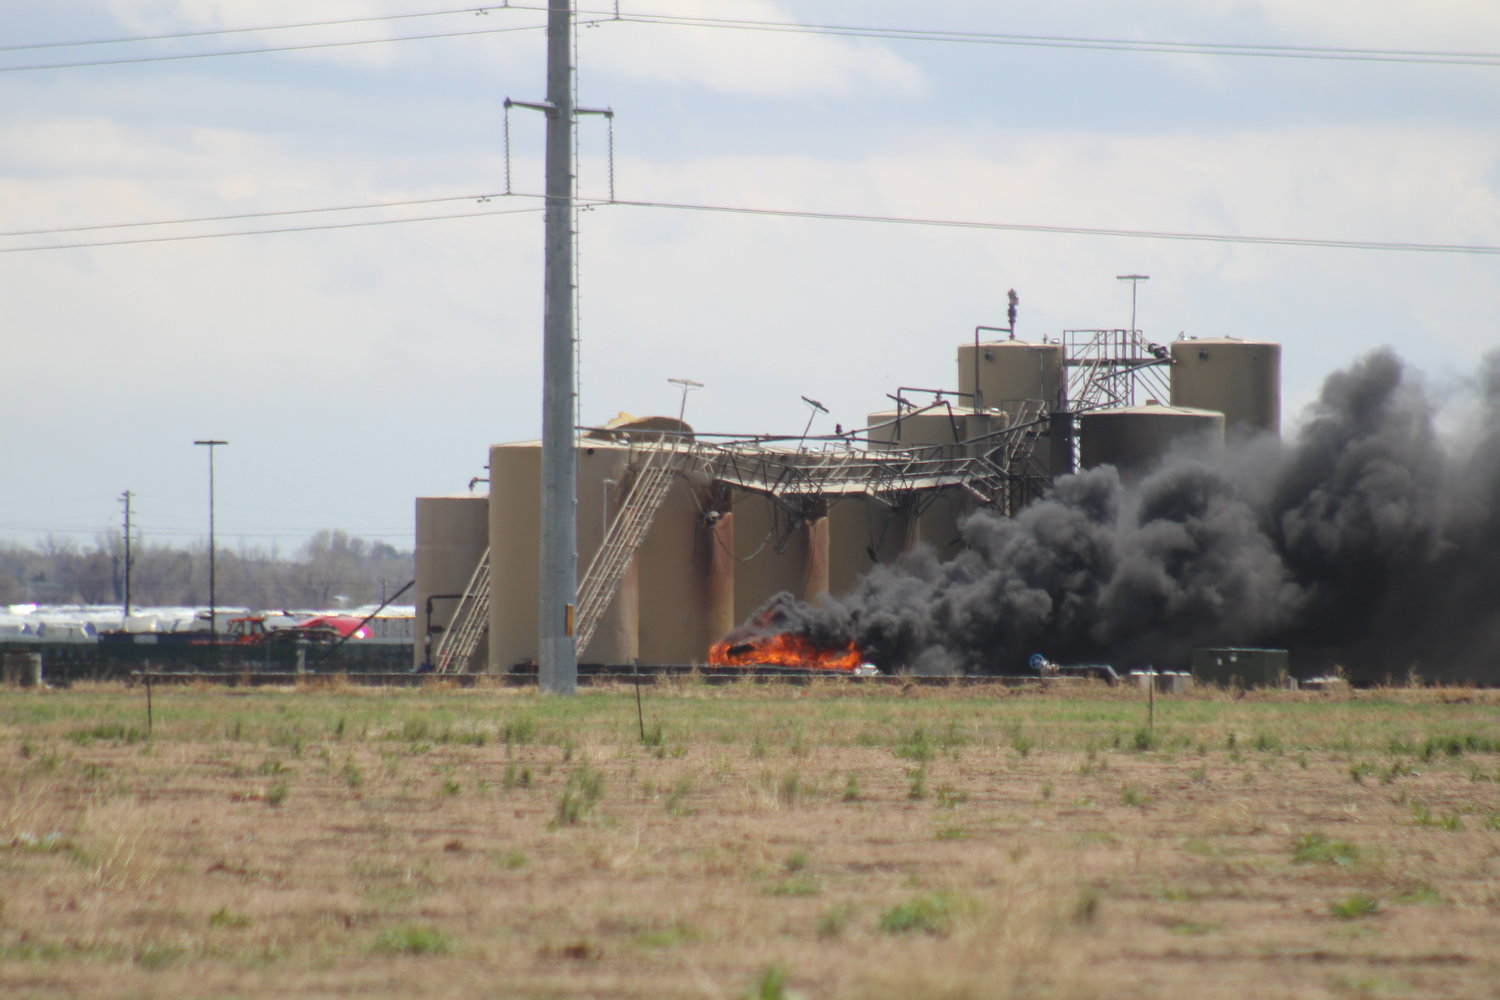 Lightning is the initial; cause of a May 5 tanker fire near U.S. Highway 85 and Weld County Road 6.